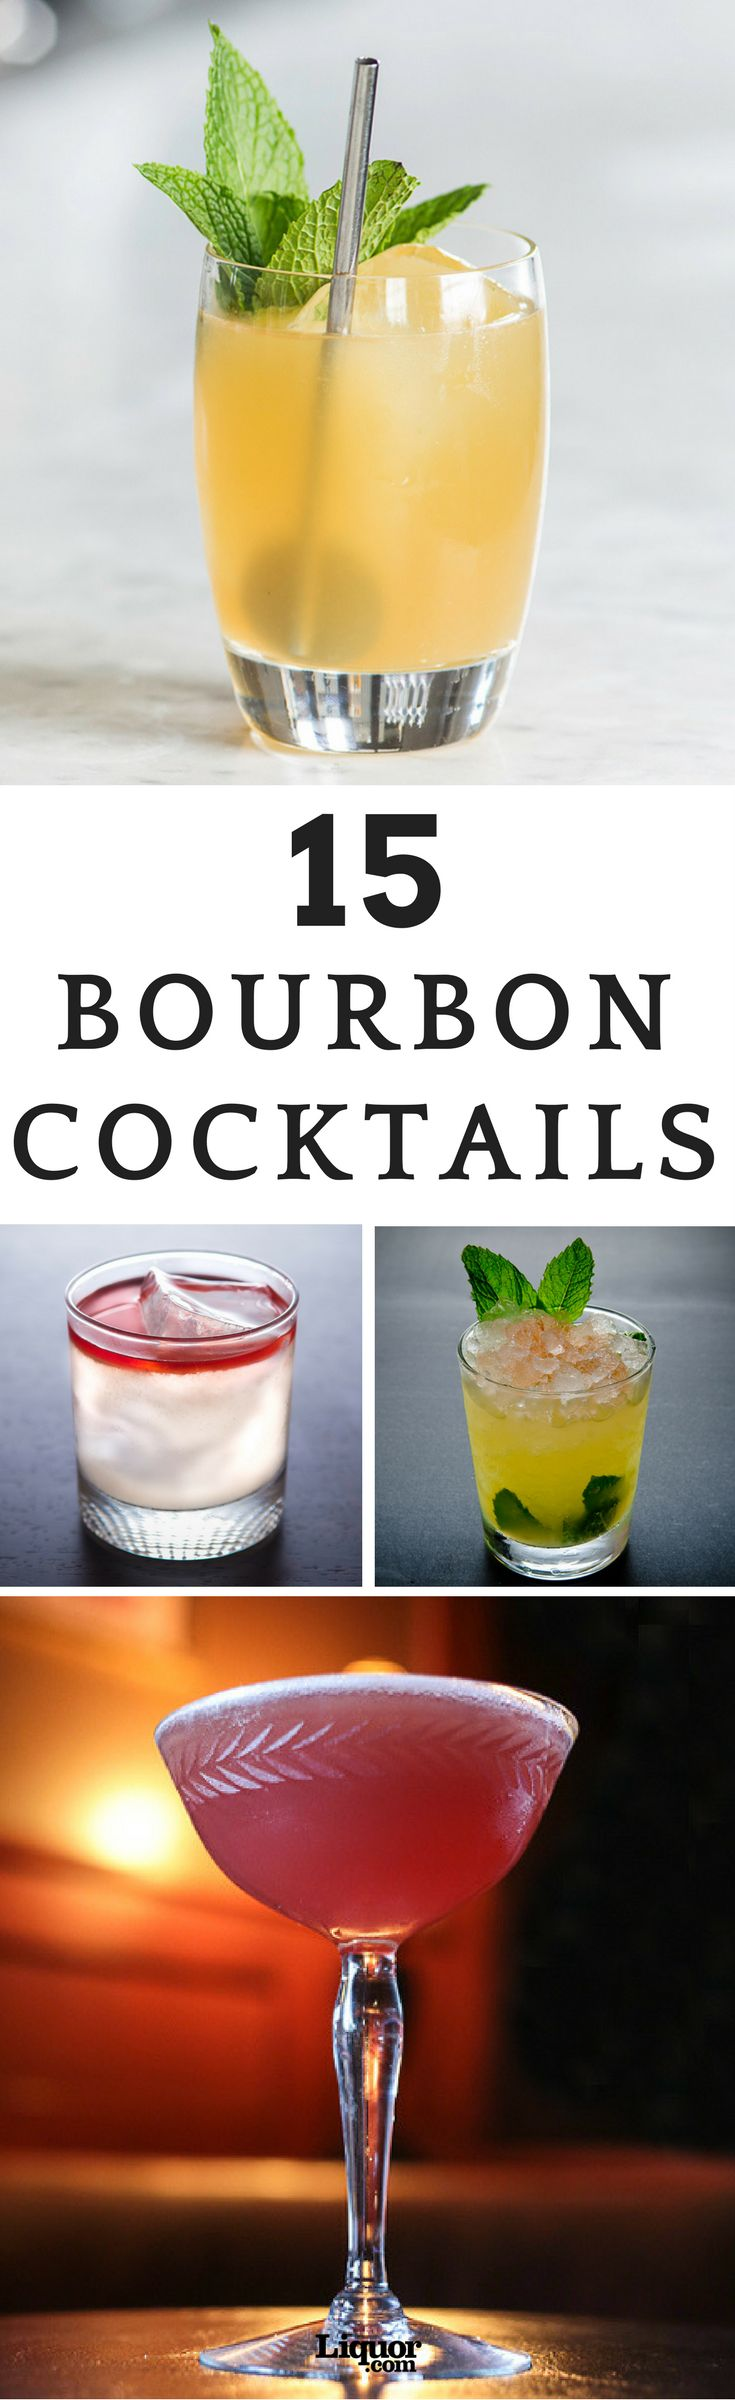 Bourbon drinks may lead to a purist telling you that adding even a drop of water will ruin the whiskey's flavor, but that's just one of the many myths surrounding the spirit. Try some of our favorite bourbon drinks today—you can thank us later!